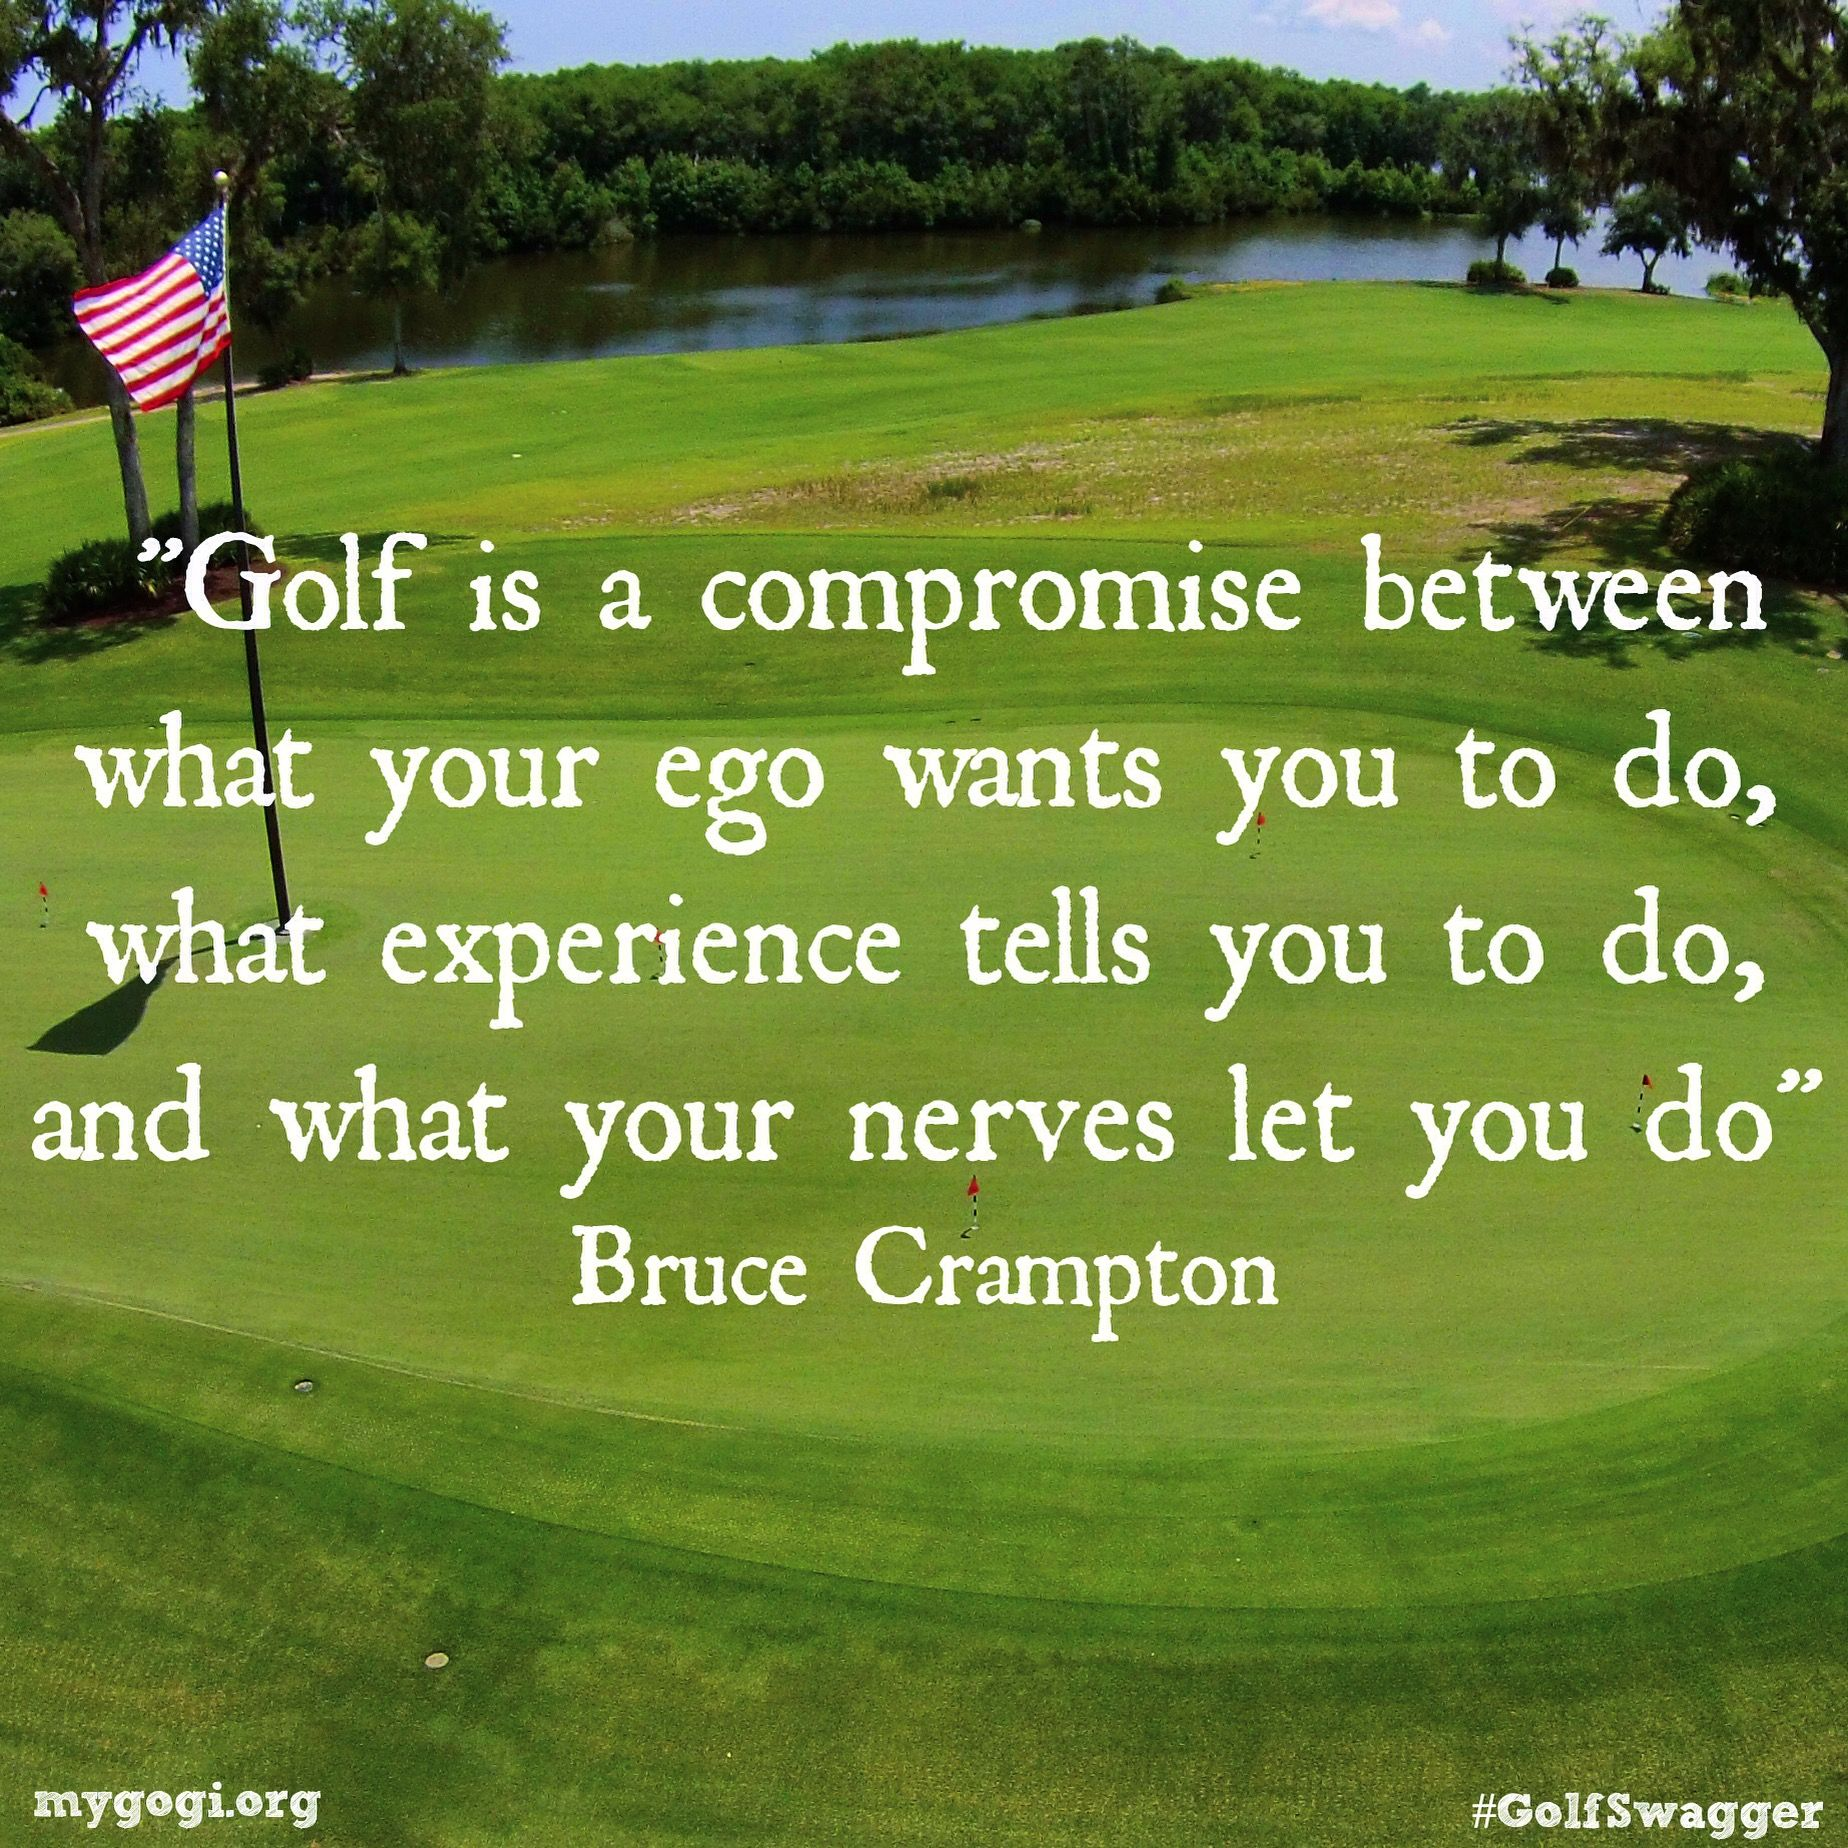 Humor Inspirational Quotes: Golf Is A Compromise Between What Your Ego Wants You To Do